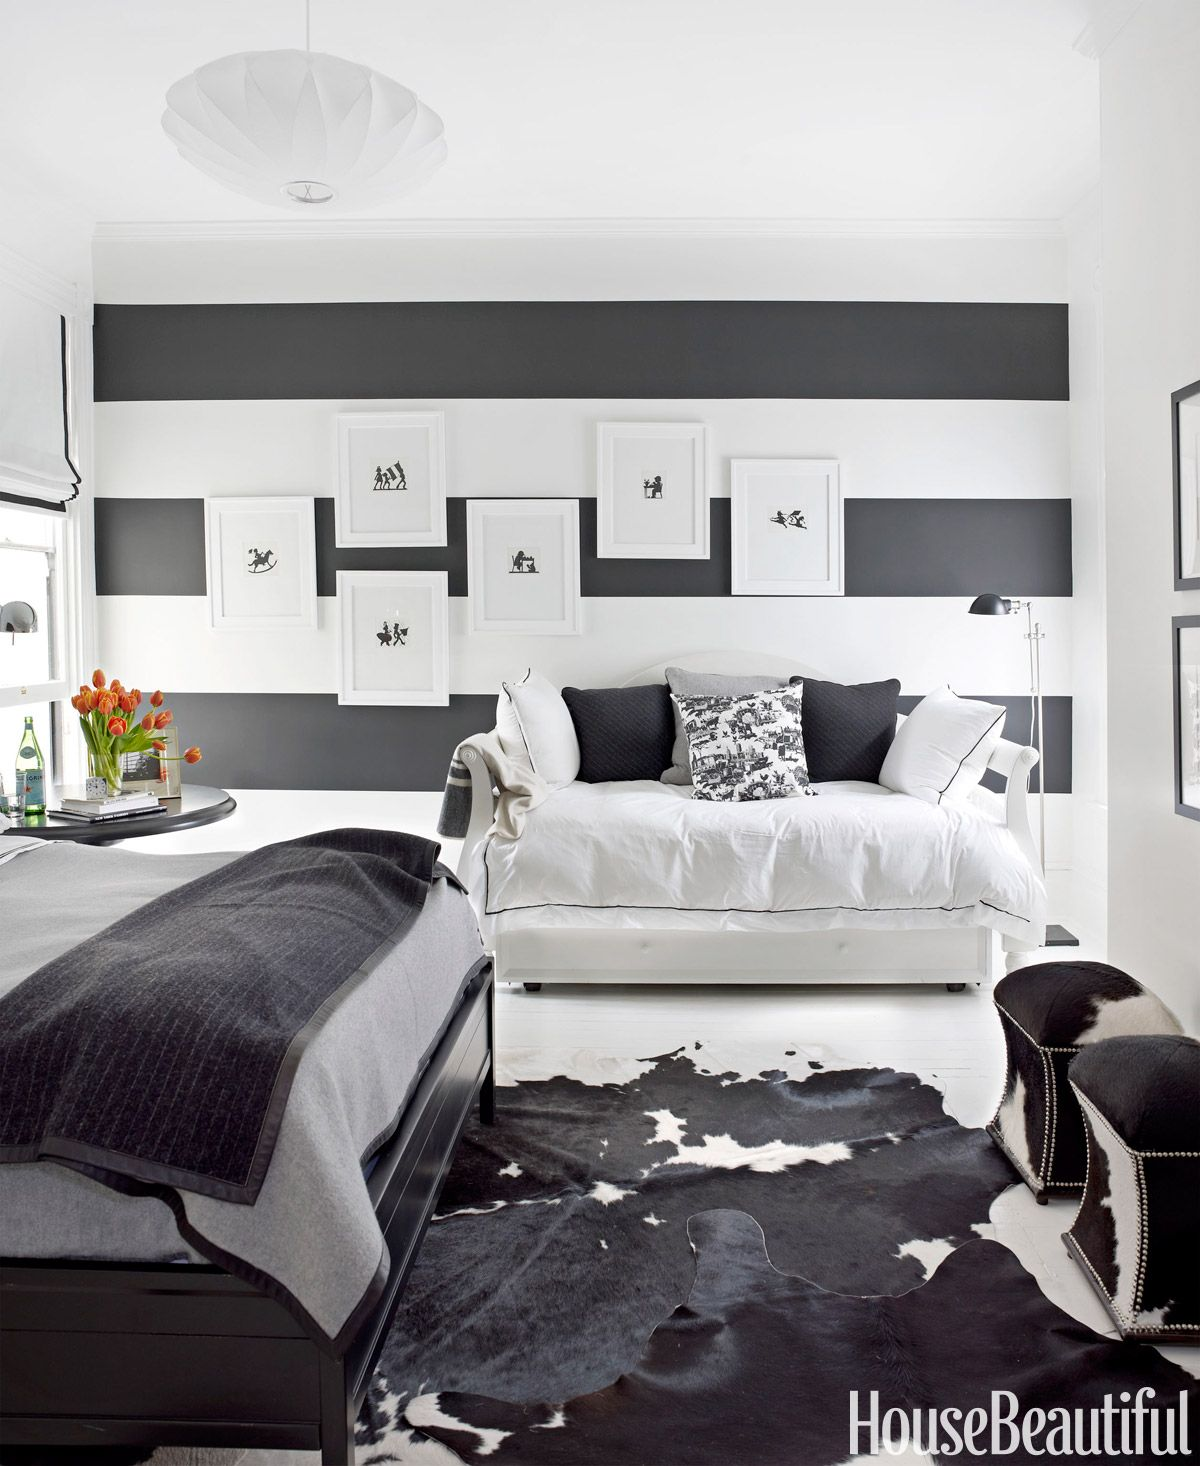 How To Decorate With Black-and-White | Pinterest | Rorschach inkblot ...